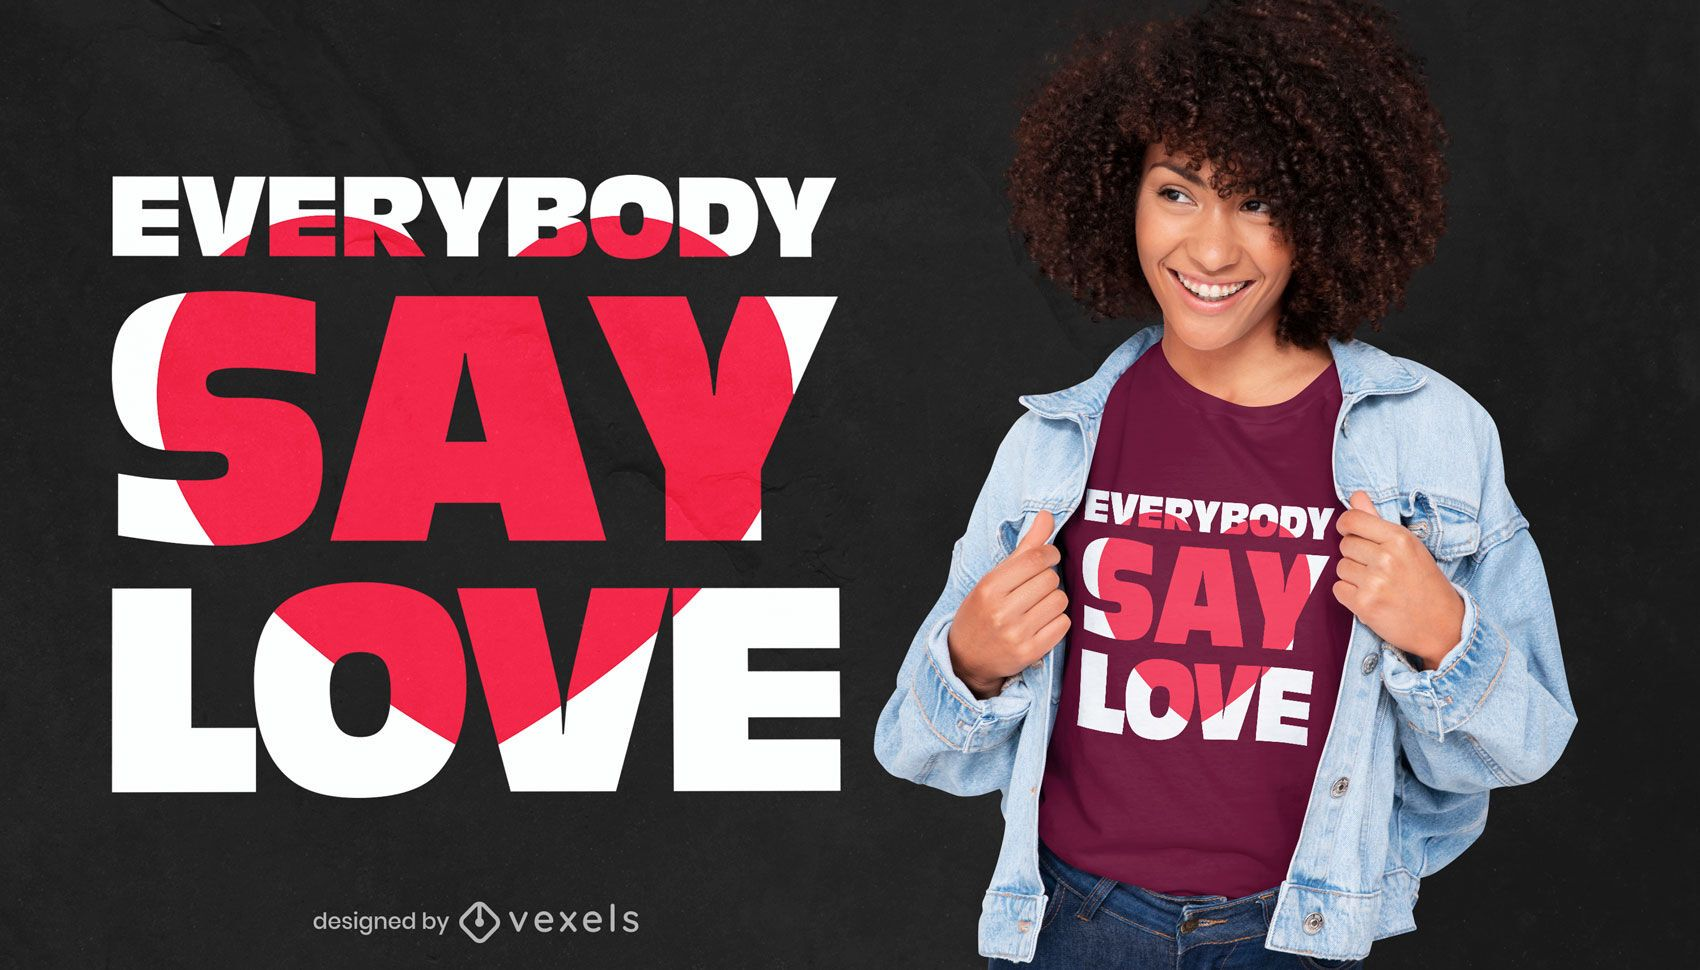 Everybody say love quote t-shirt design